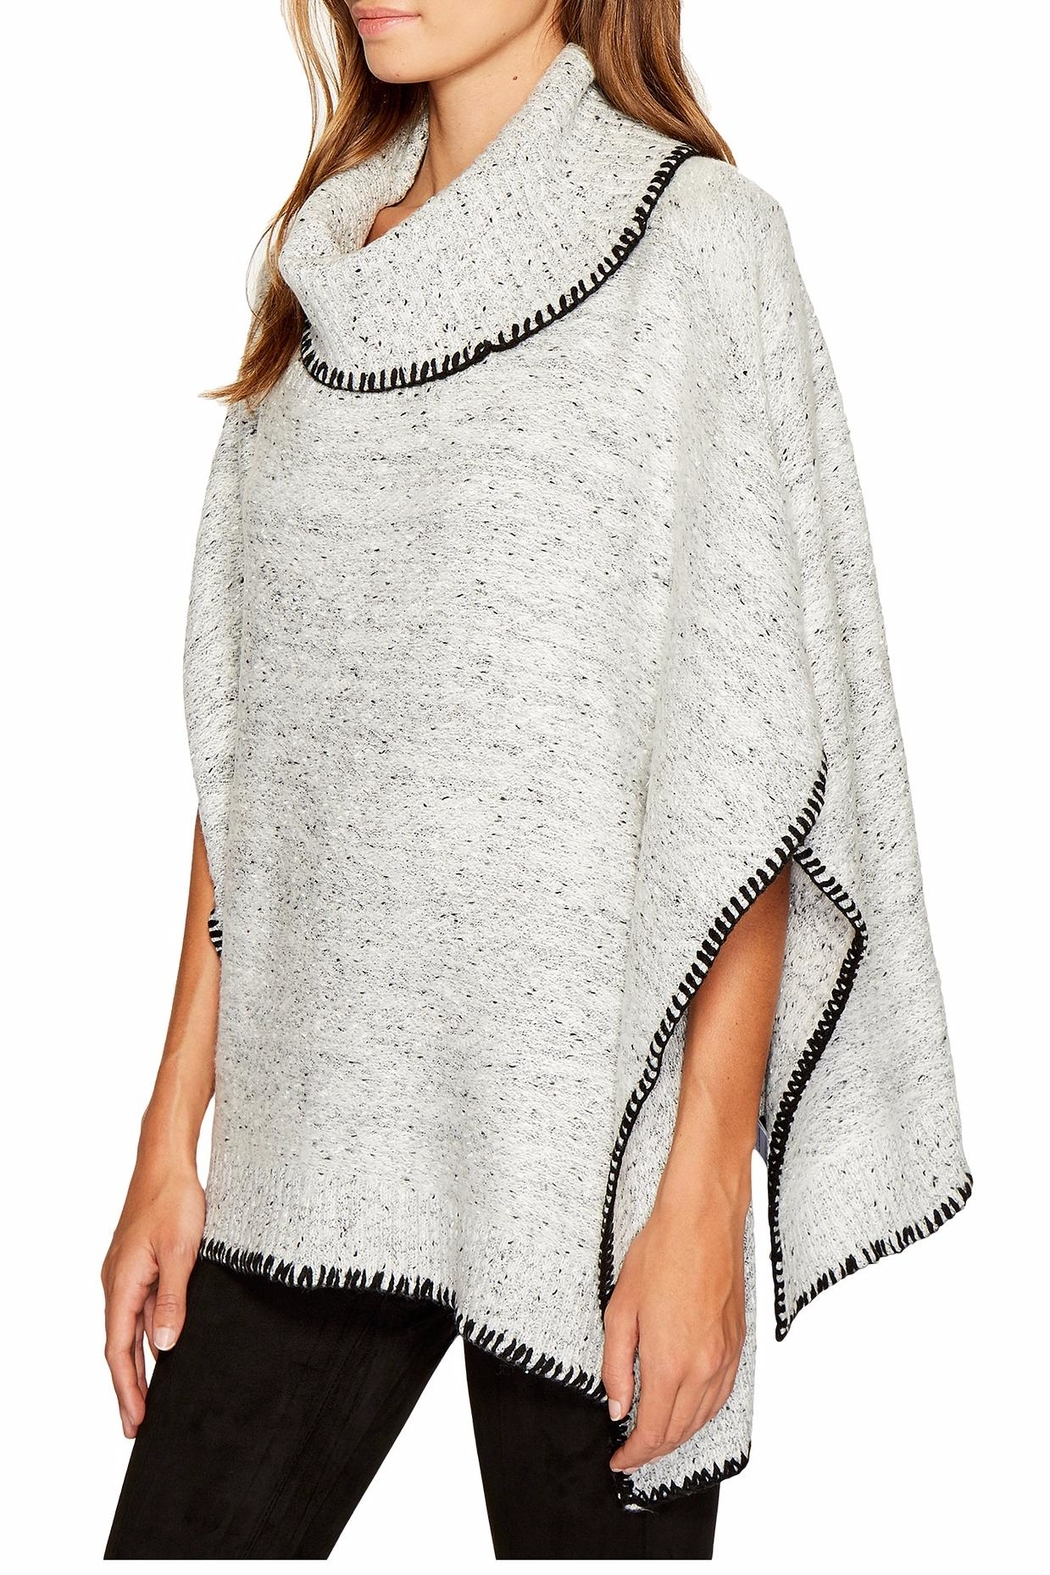 Bishop + Young Dolman Speckled Poncho - Front Full Image